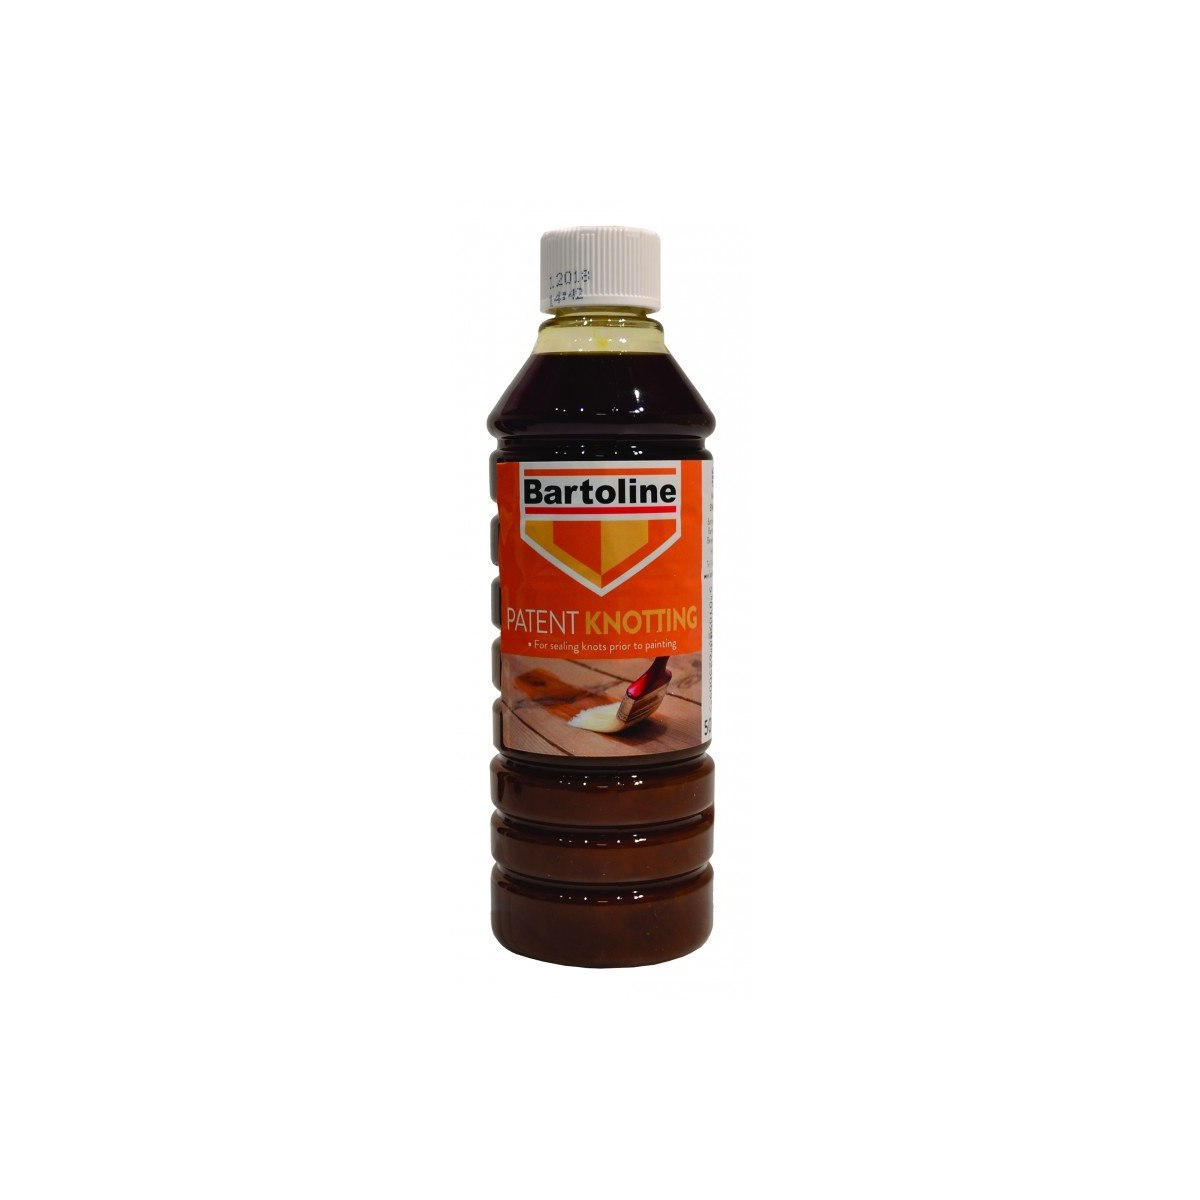 Bartoline Patent Knotting 500ml